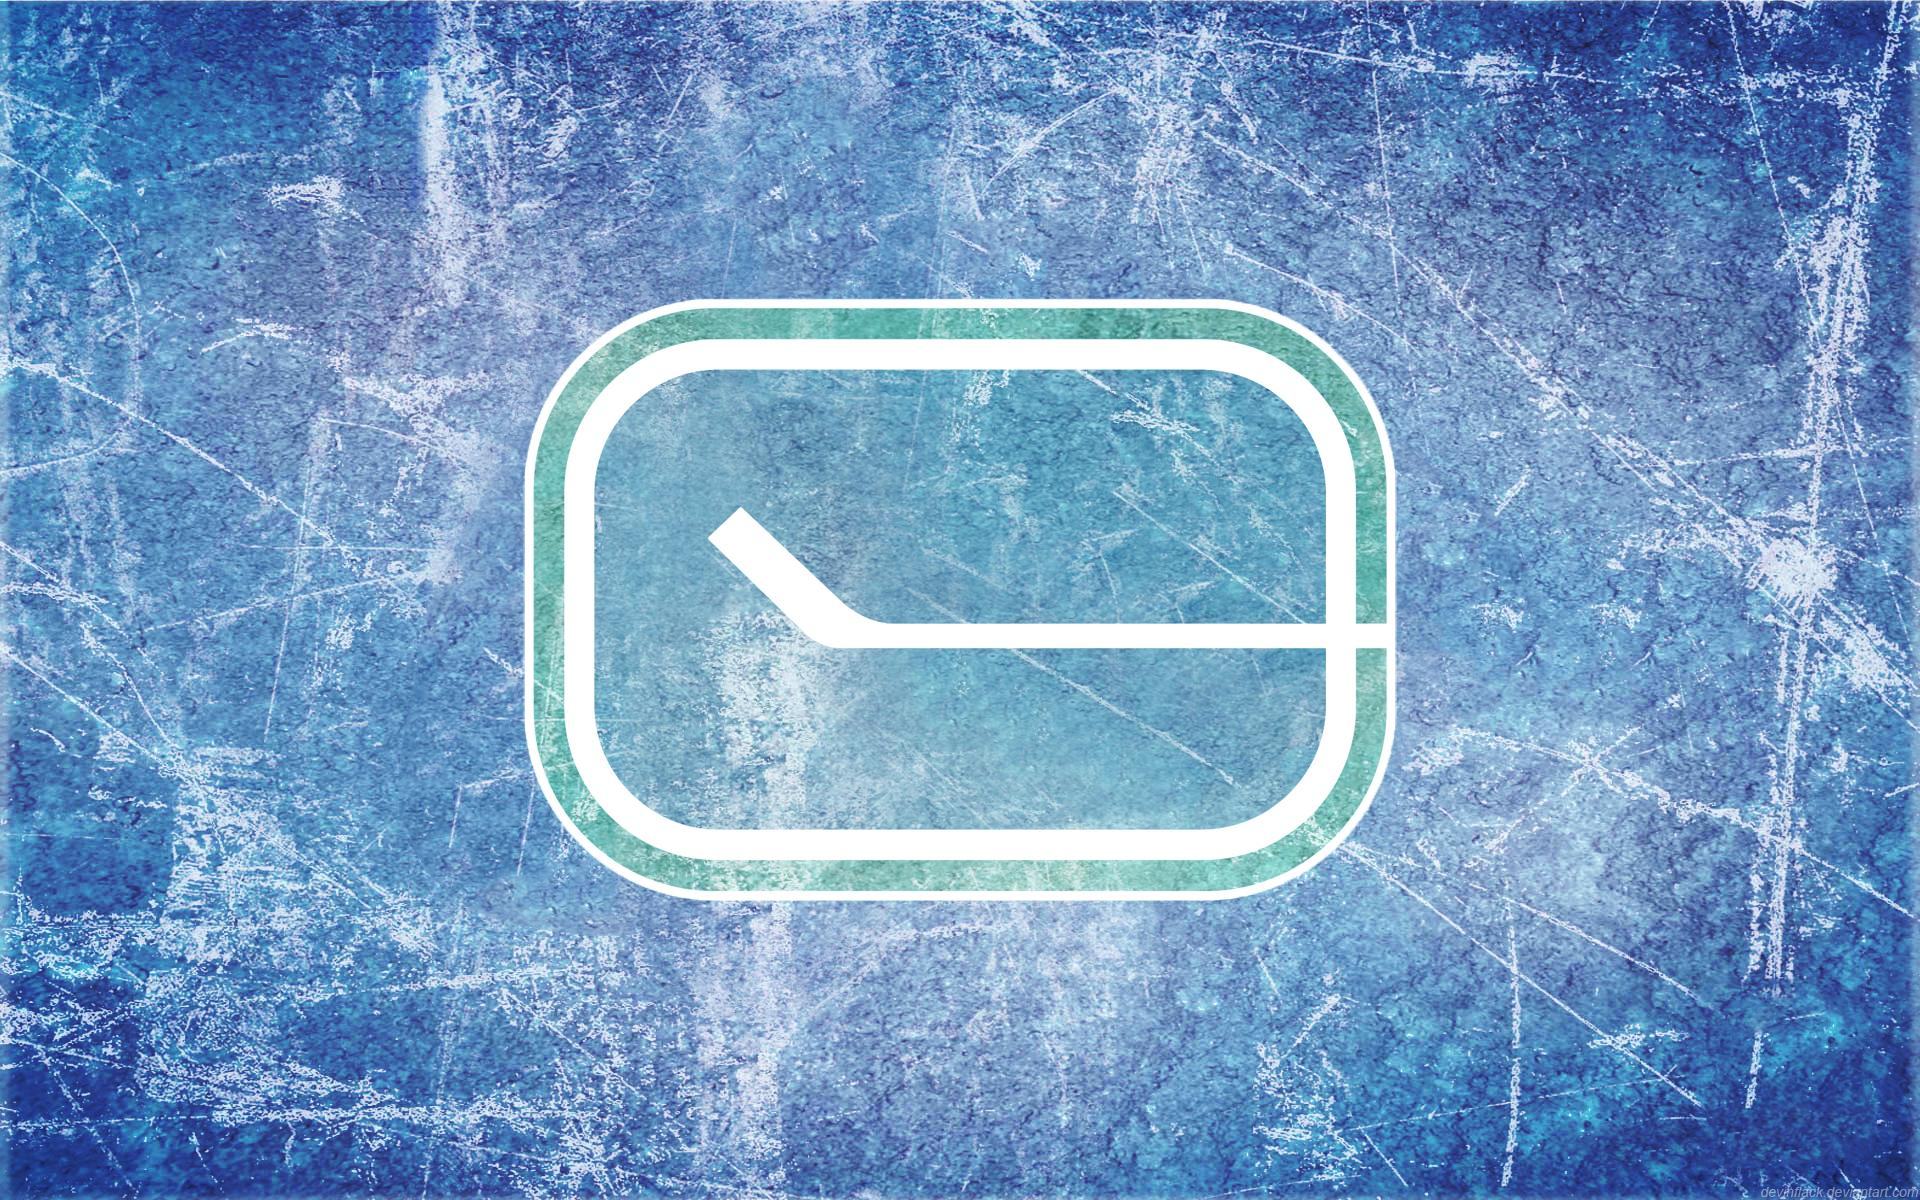 Vancouver Canucks Wallpaper Hd Ice Hockey Backgrounds Wallpaper Cave